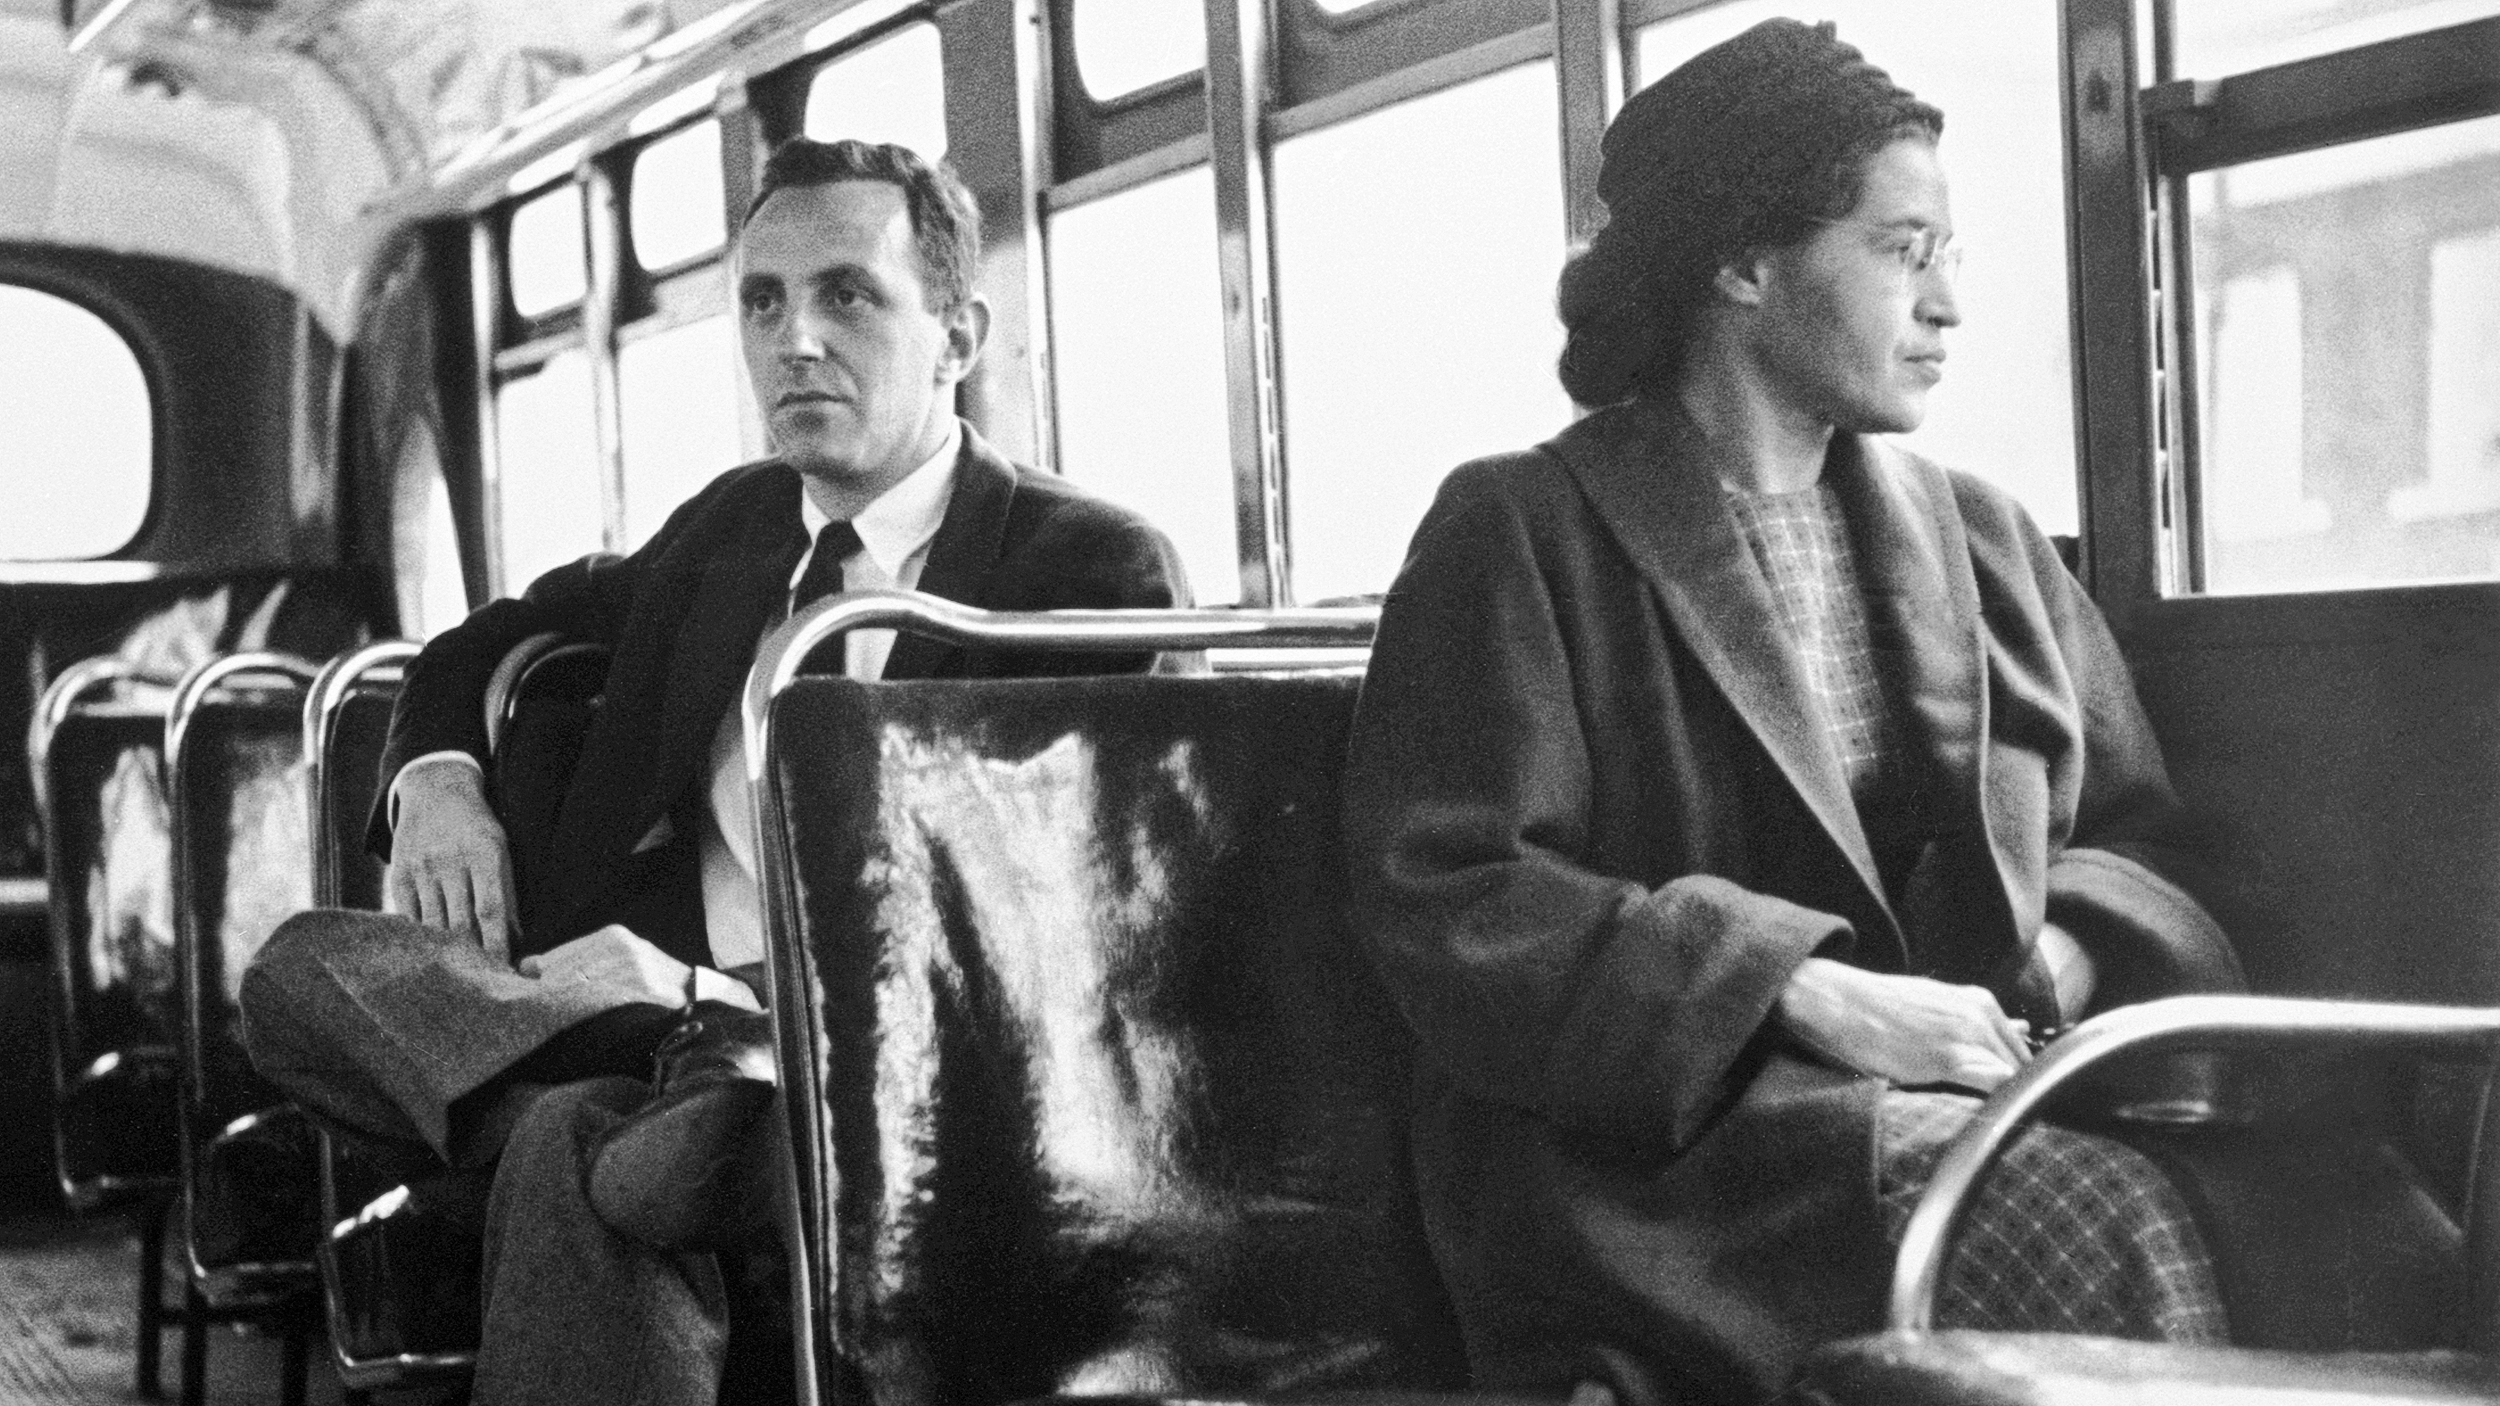 hight resolution of on this day rosa parks refused to give up her bus seat igniting the civil rights movement